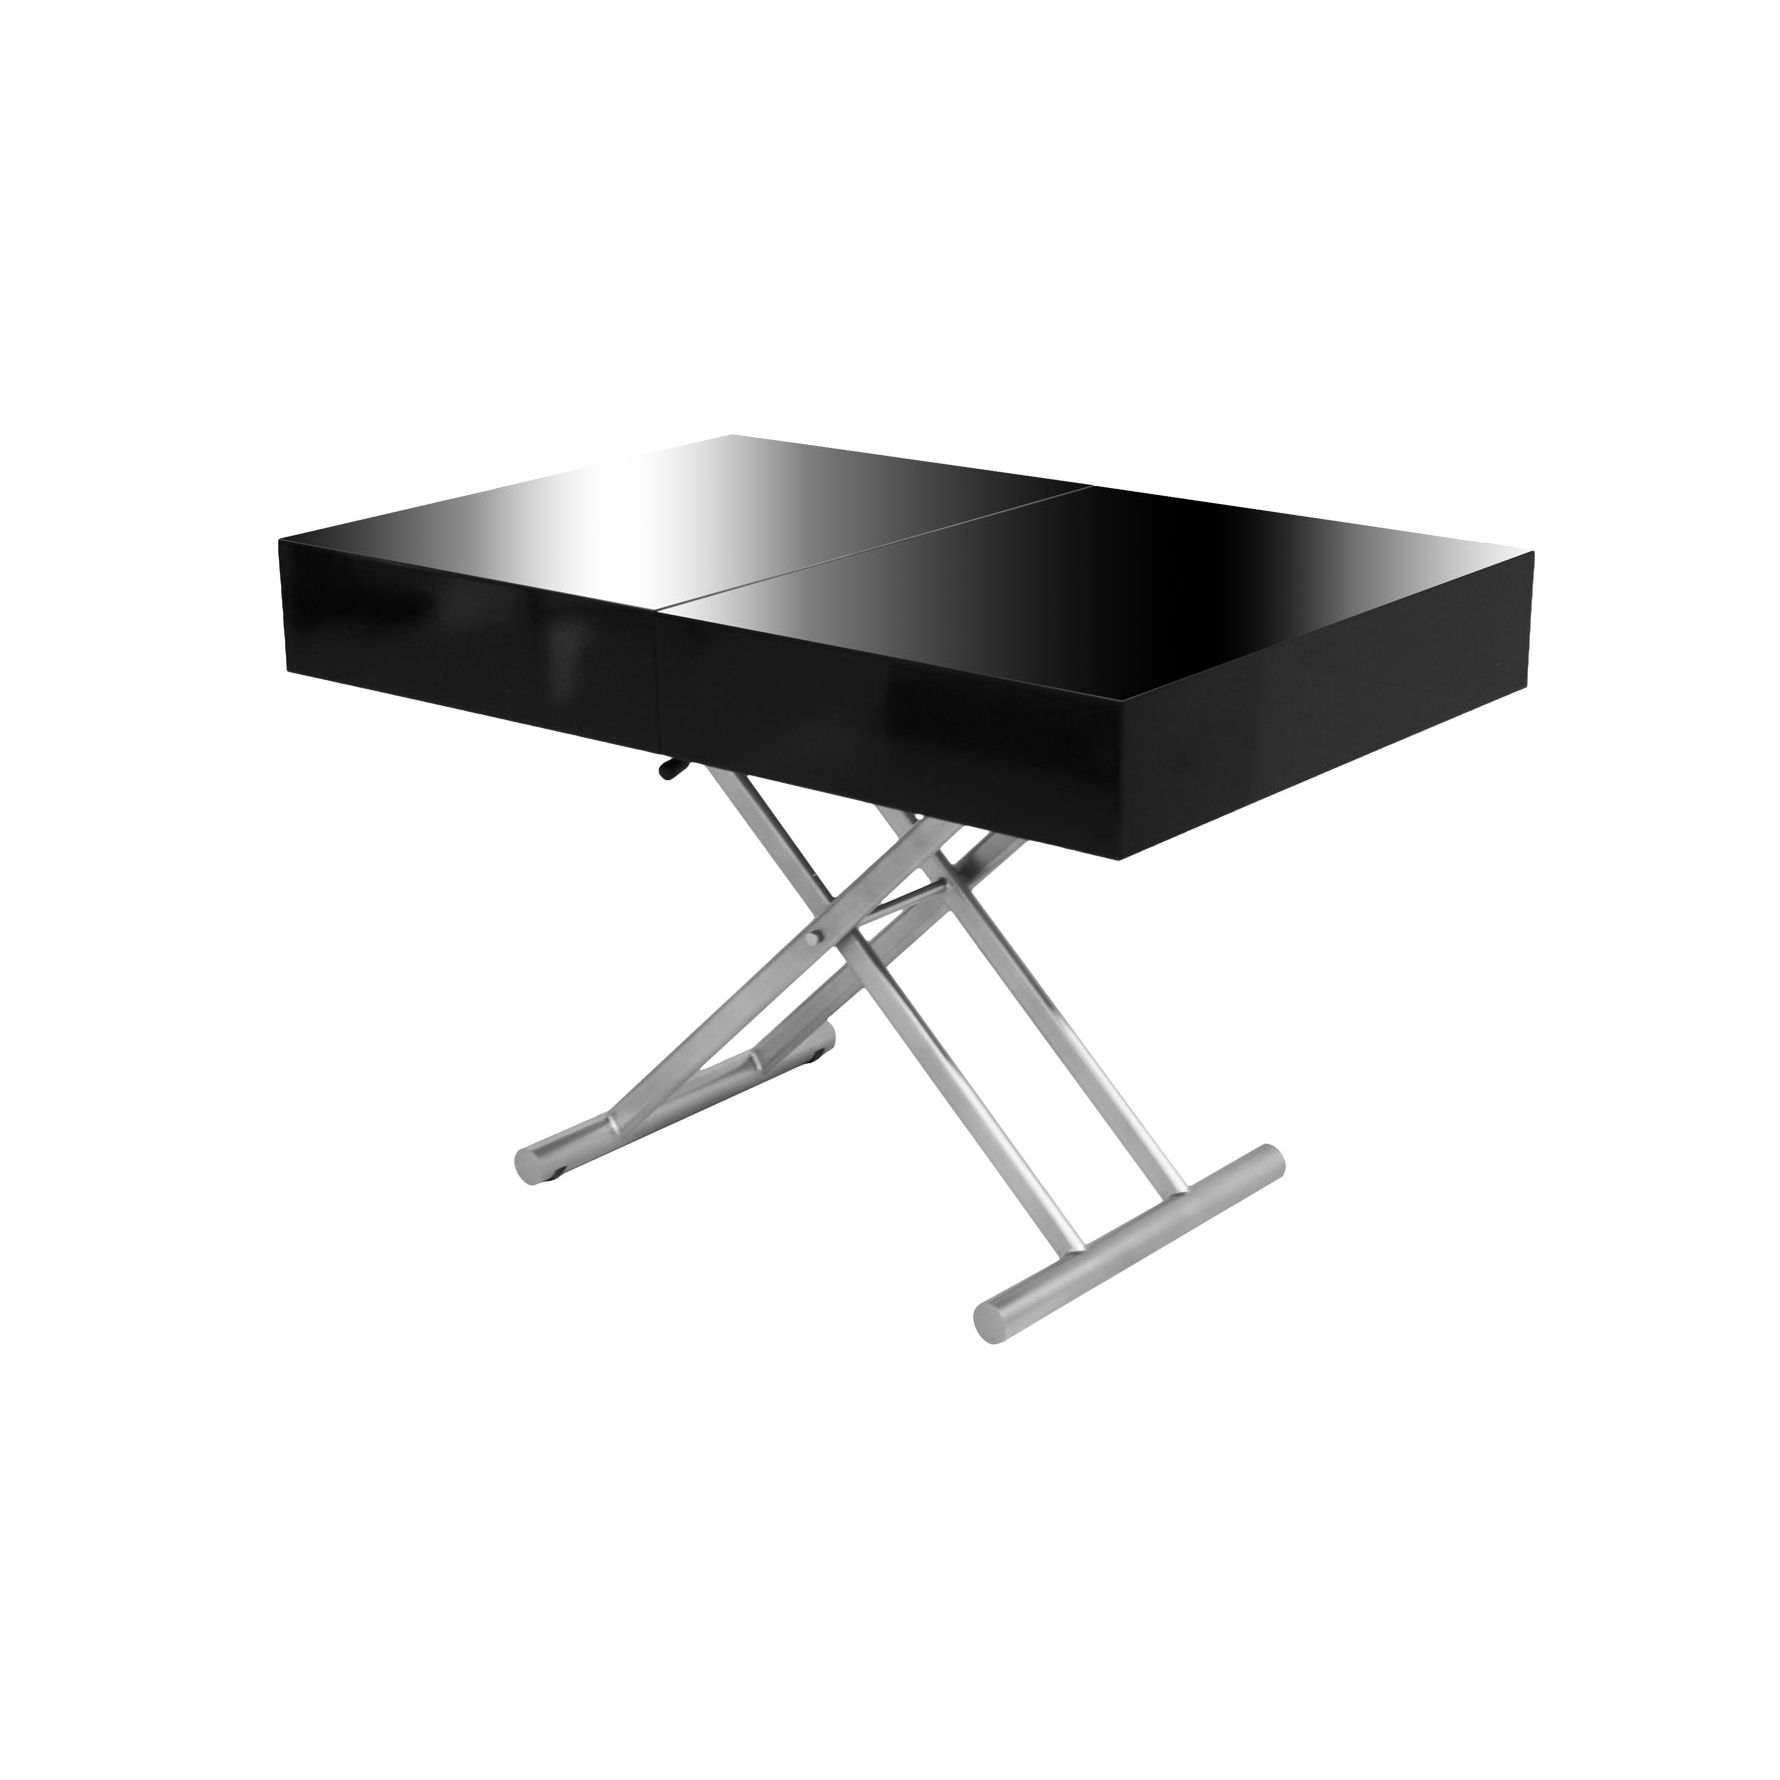 Deco in paris table basse relevable extensible noire - Table extensible laquee ...